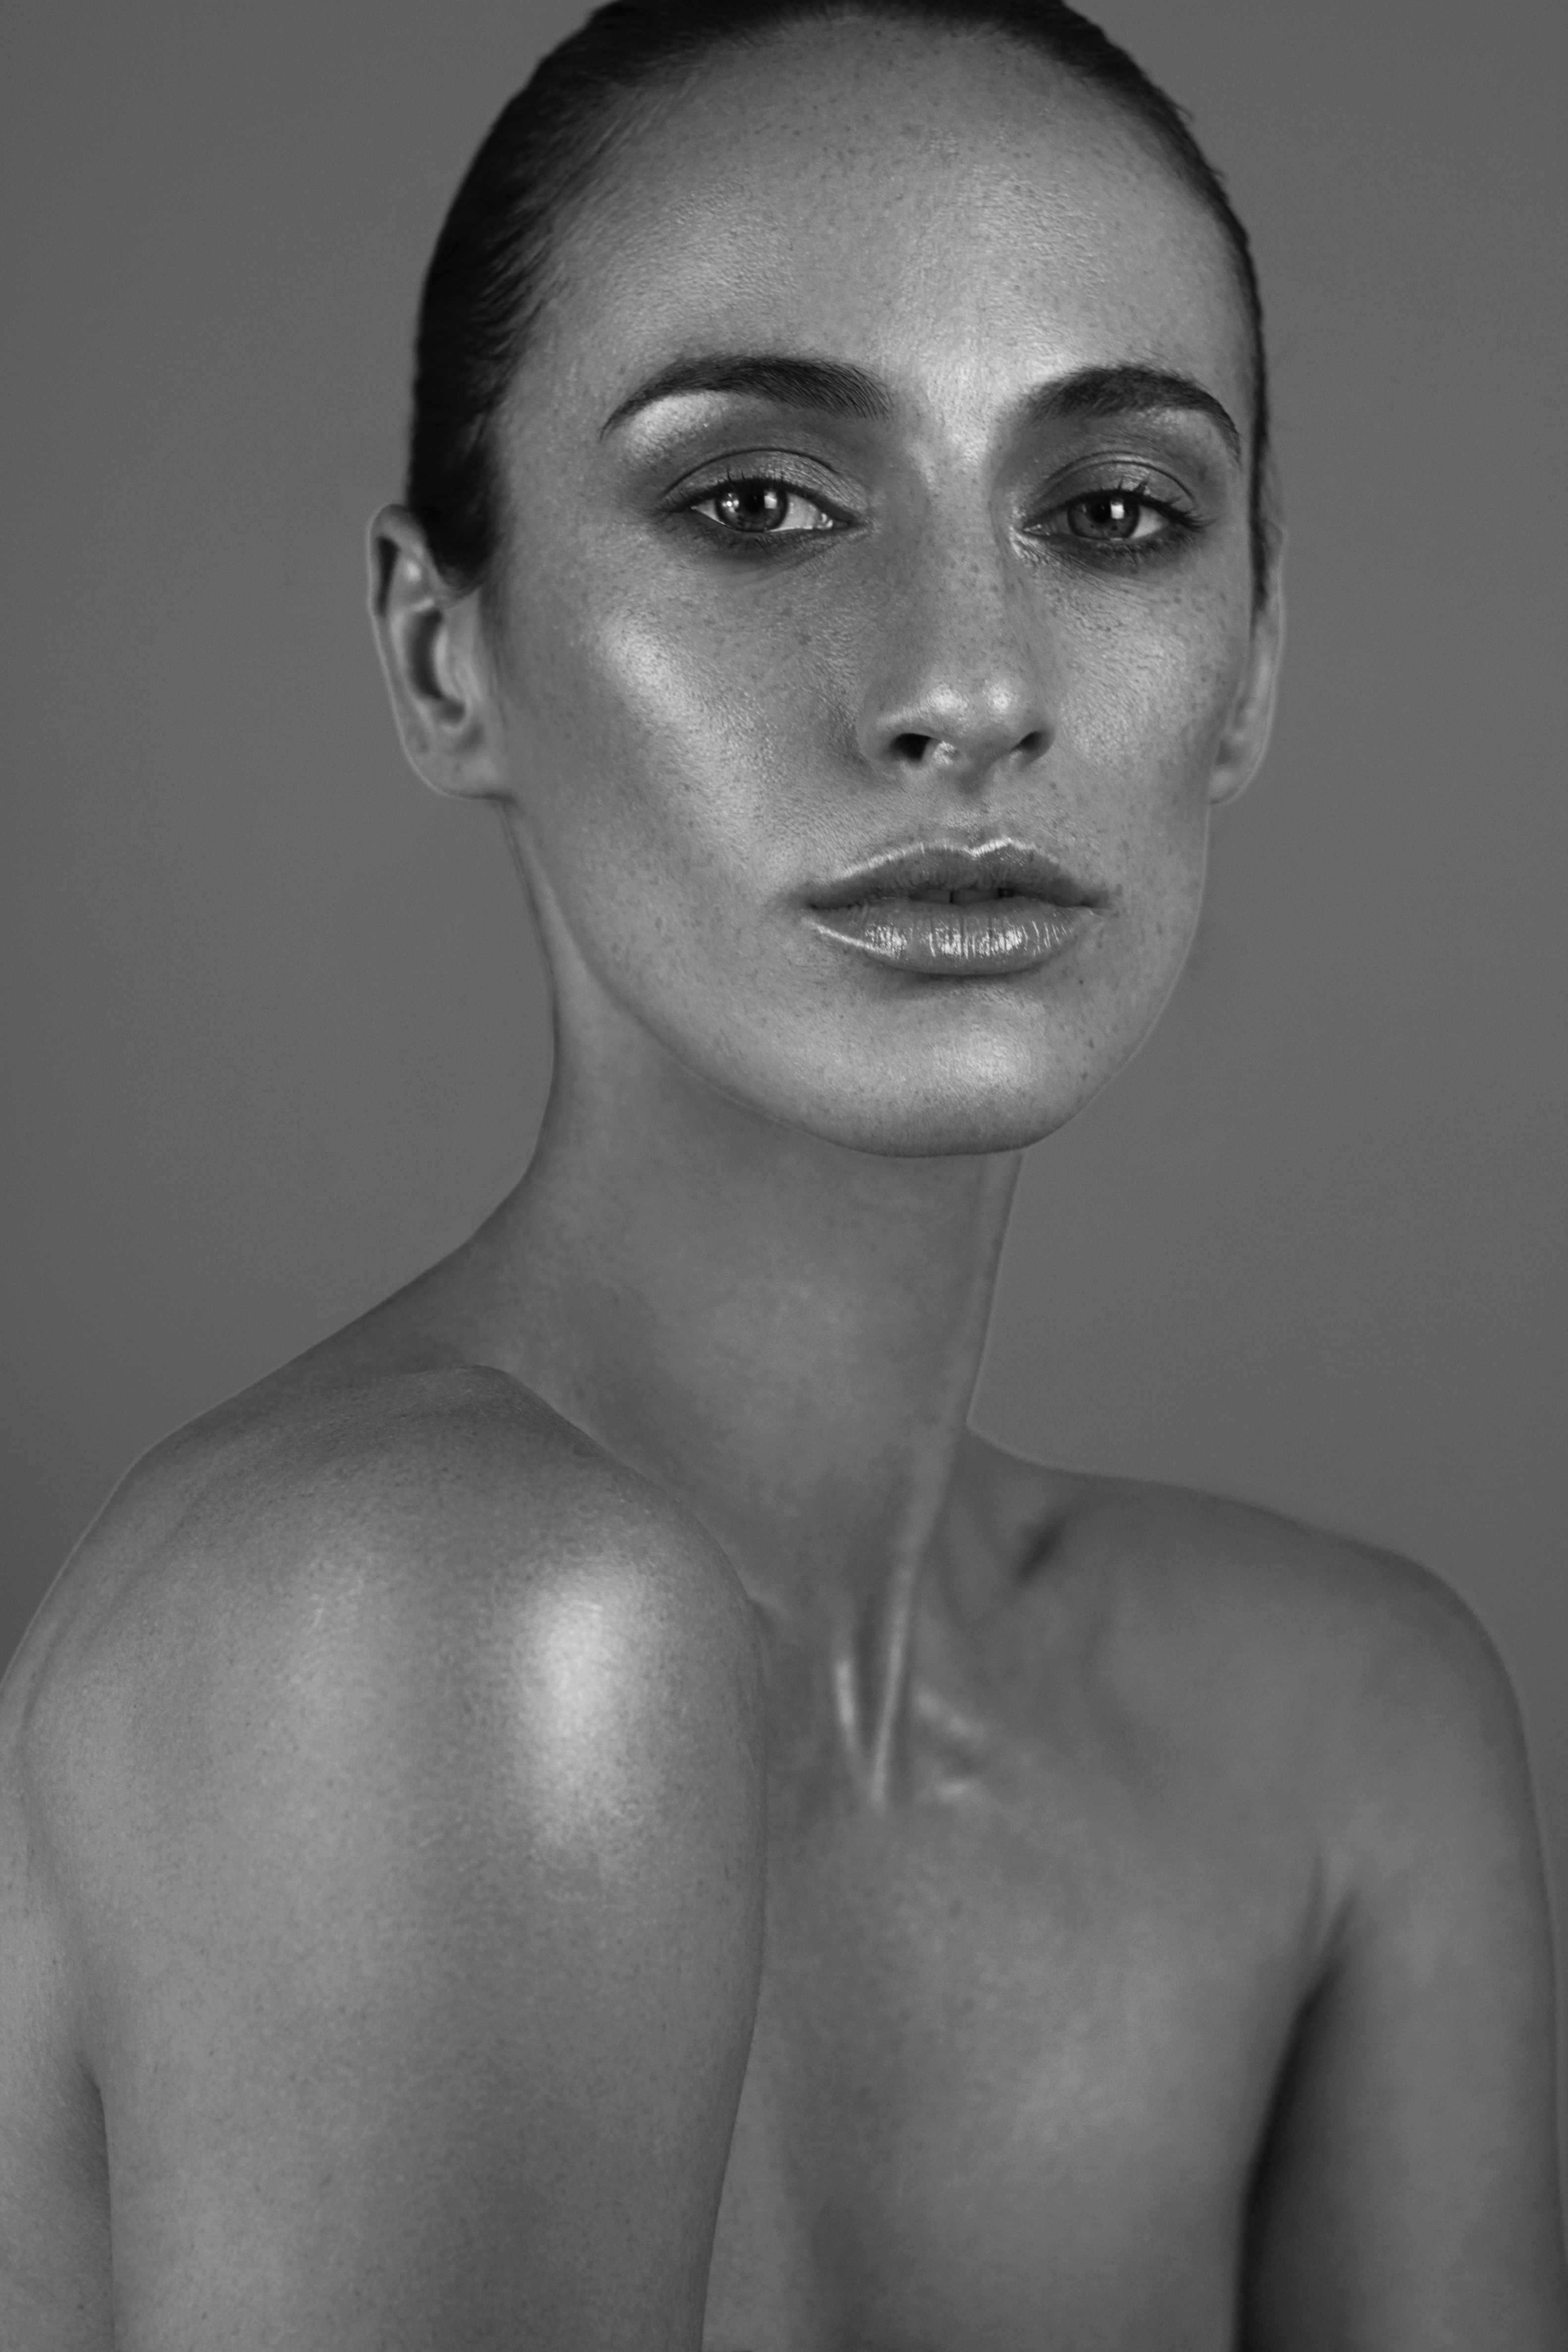 BLACK AND WHITE METALLIC. Shot by me and makeup by my